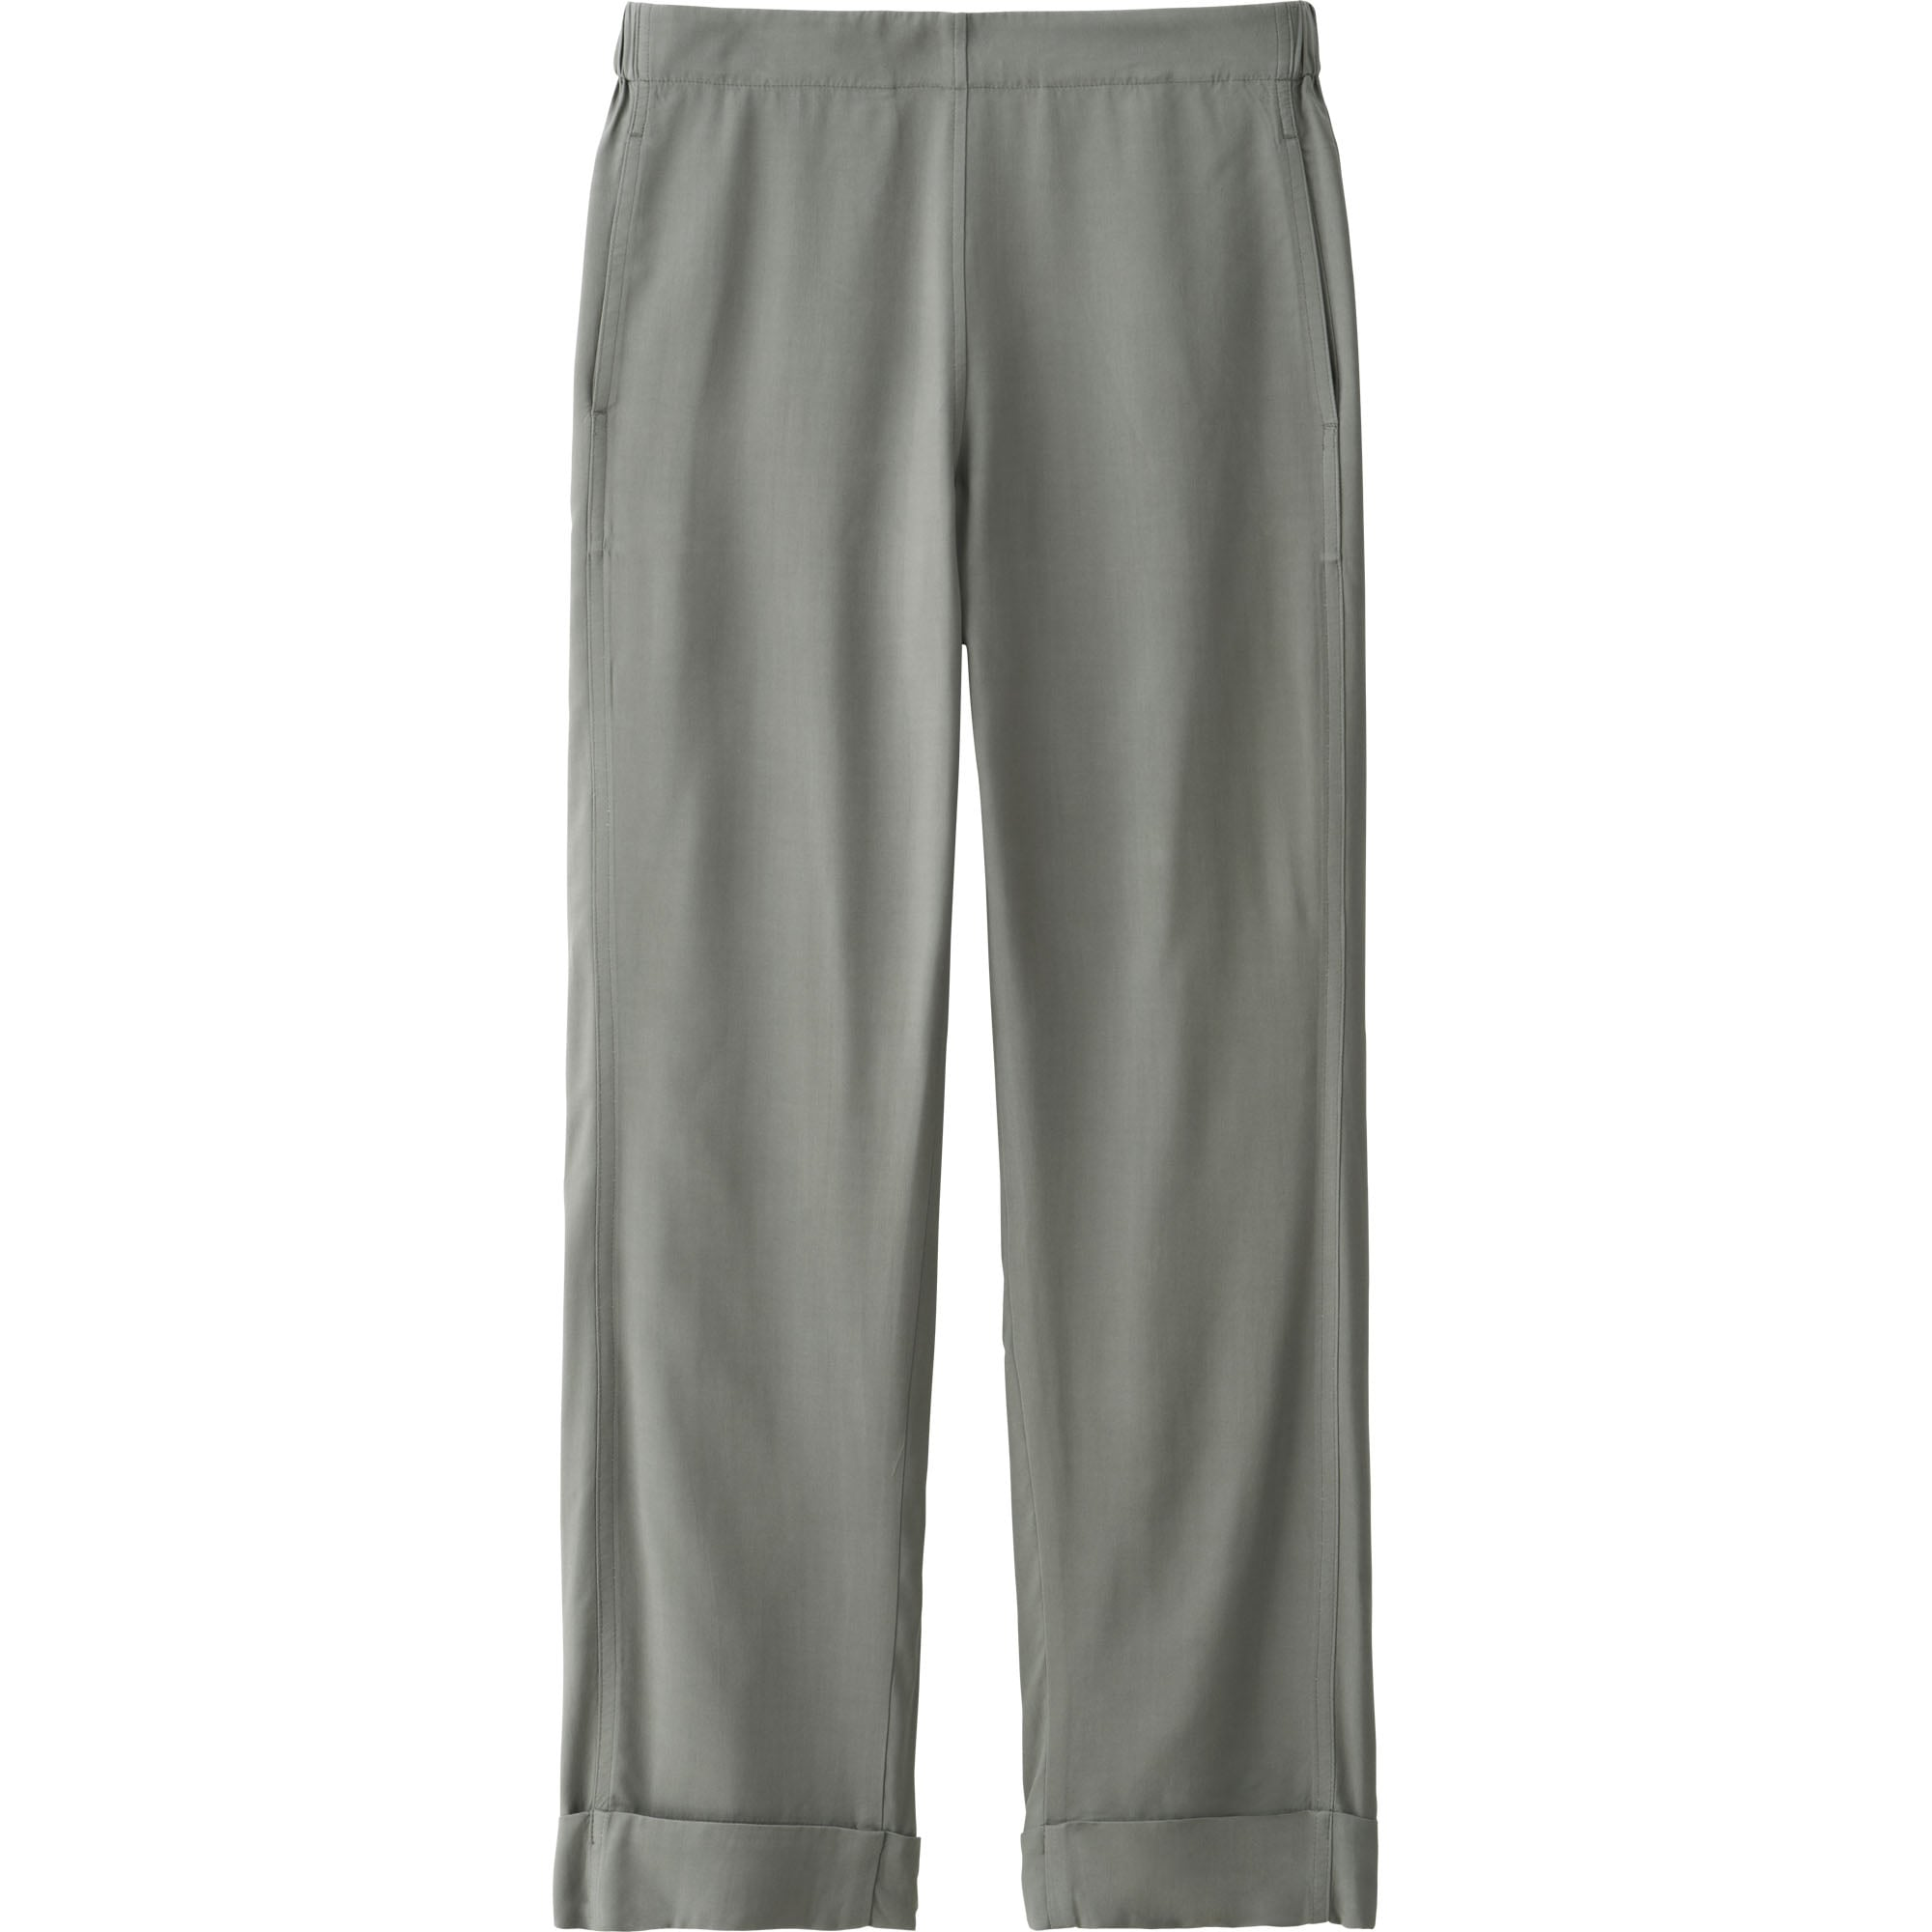 Rayon Wide Leg Pants ($50) | The Former Head of Hermès Debuted the ...